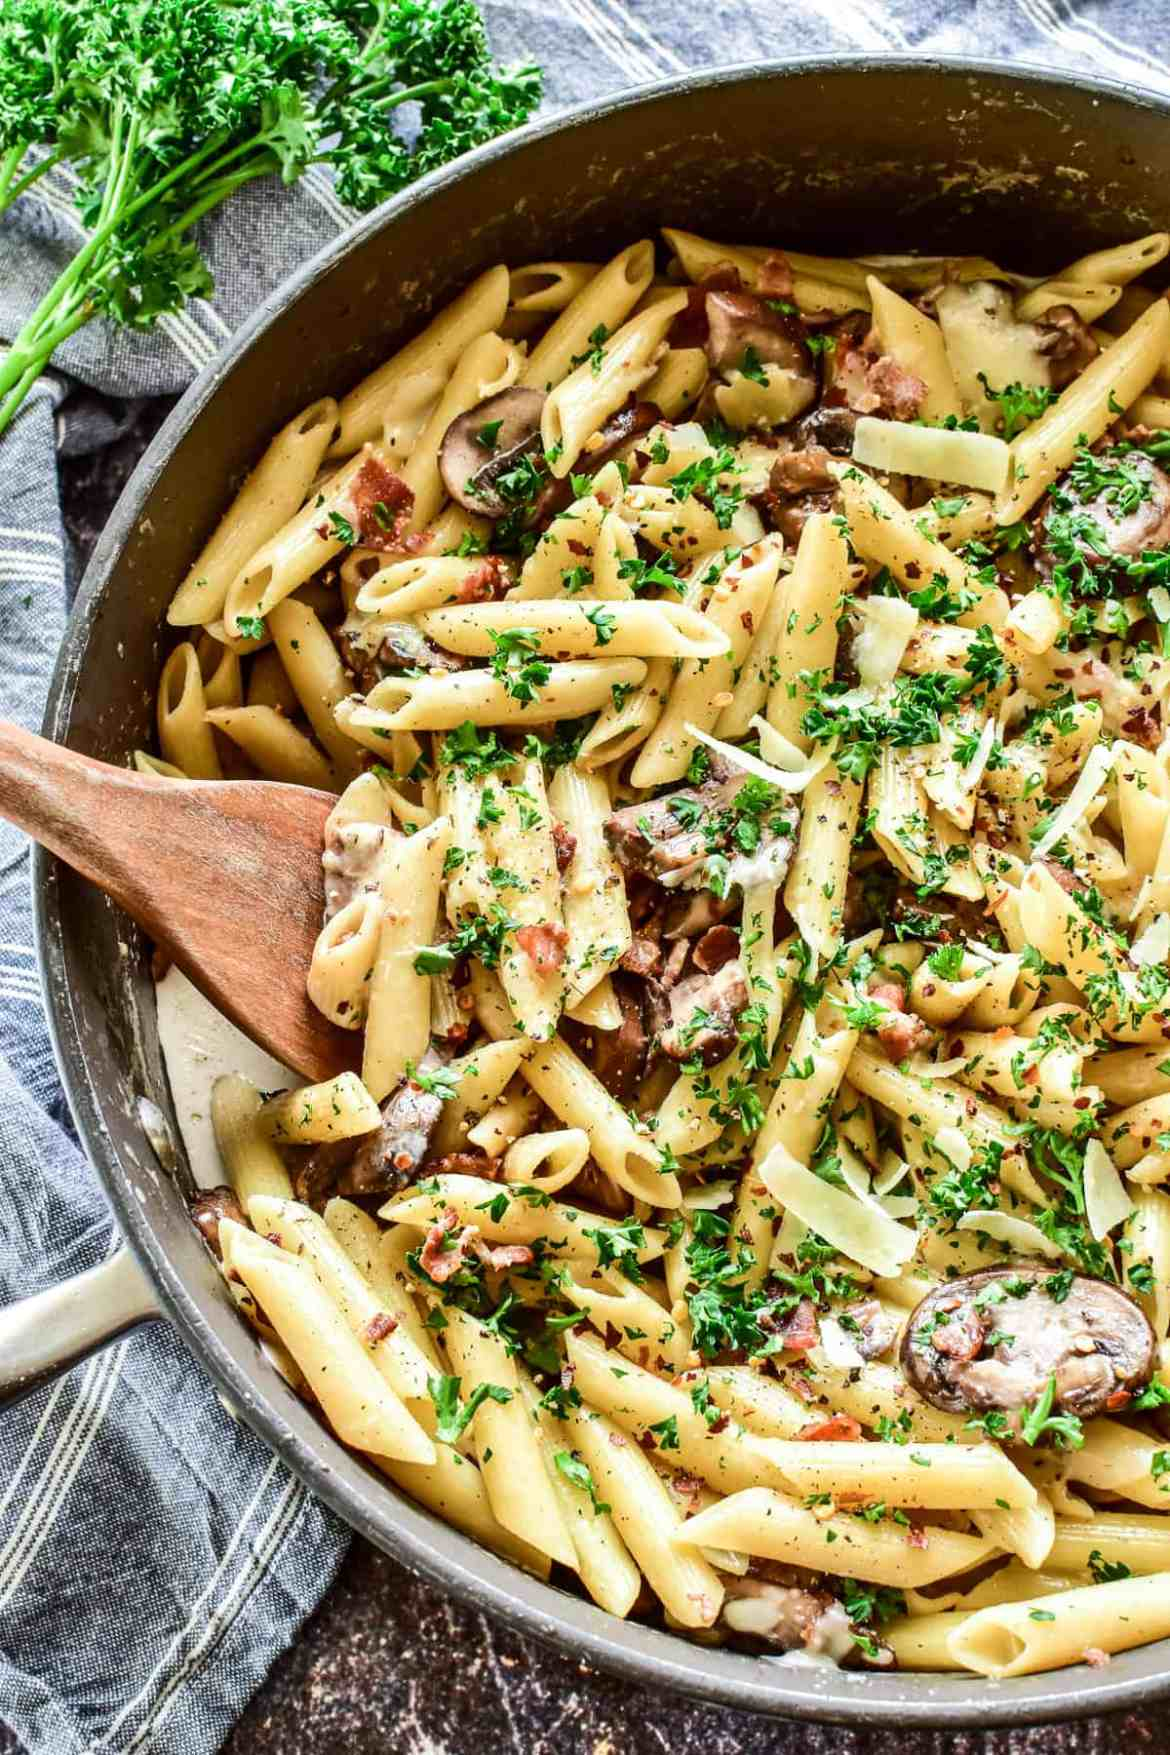 Penne_with_bacon_mushrooms dinejozistyle